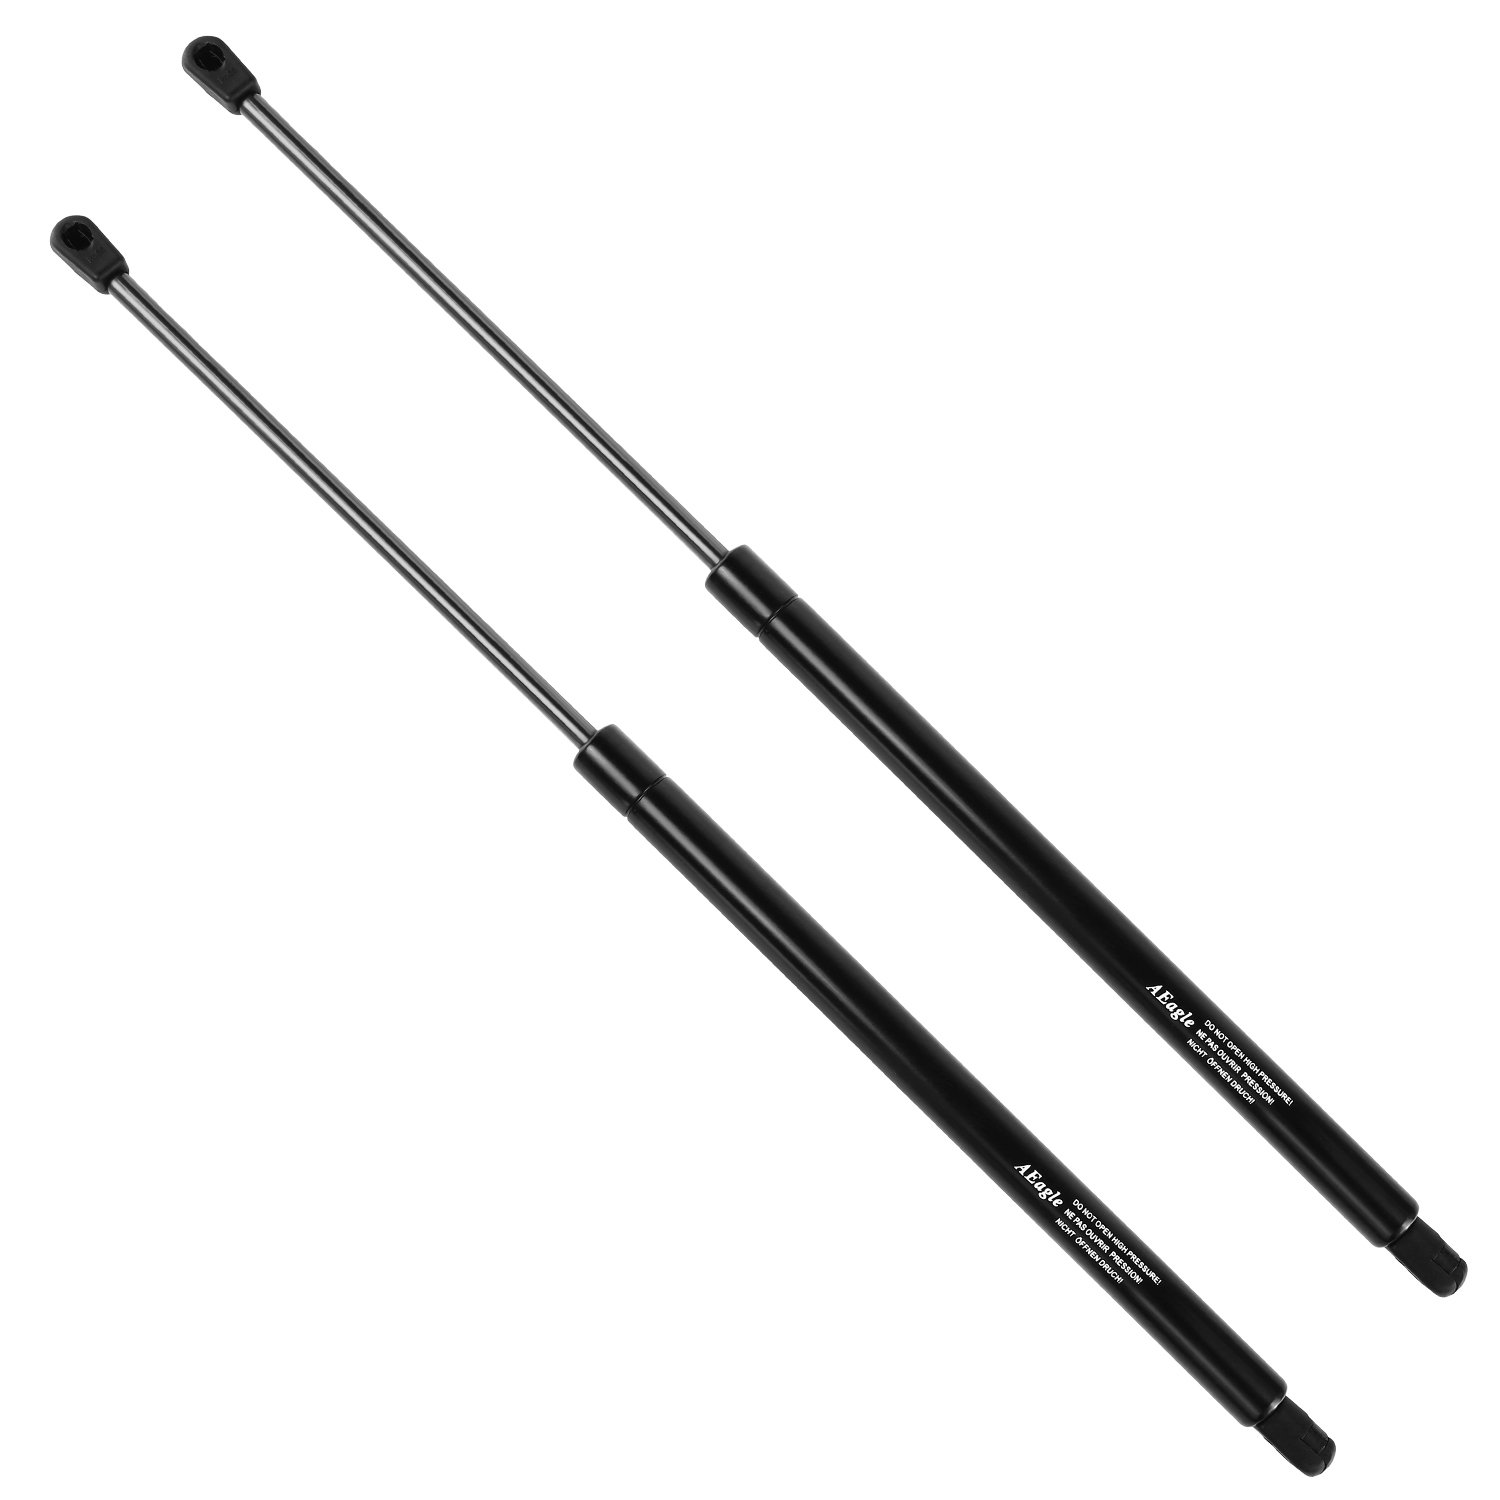 2Pcs Rear Liftgate Hatch Door Lift Supports Shocks 6117 SG126007 for 2005-2010 Honda Odyssey with Out Power Liftgate